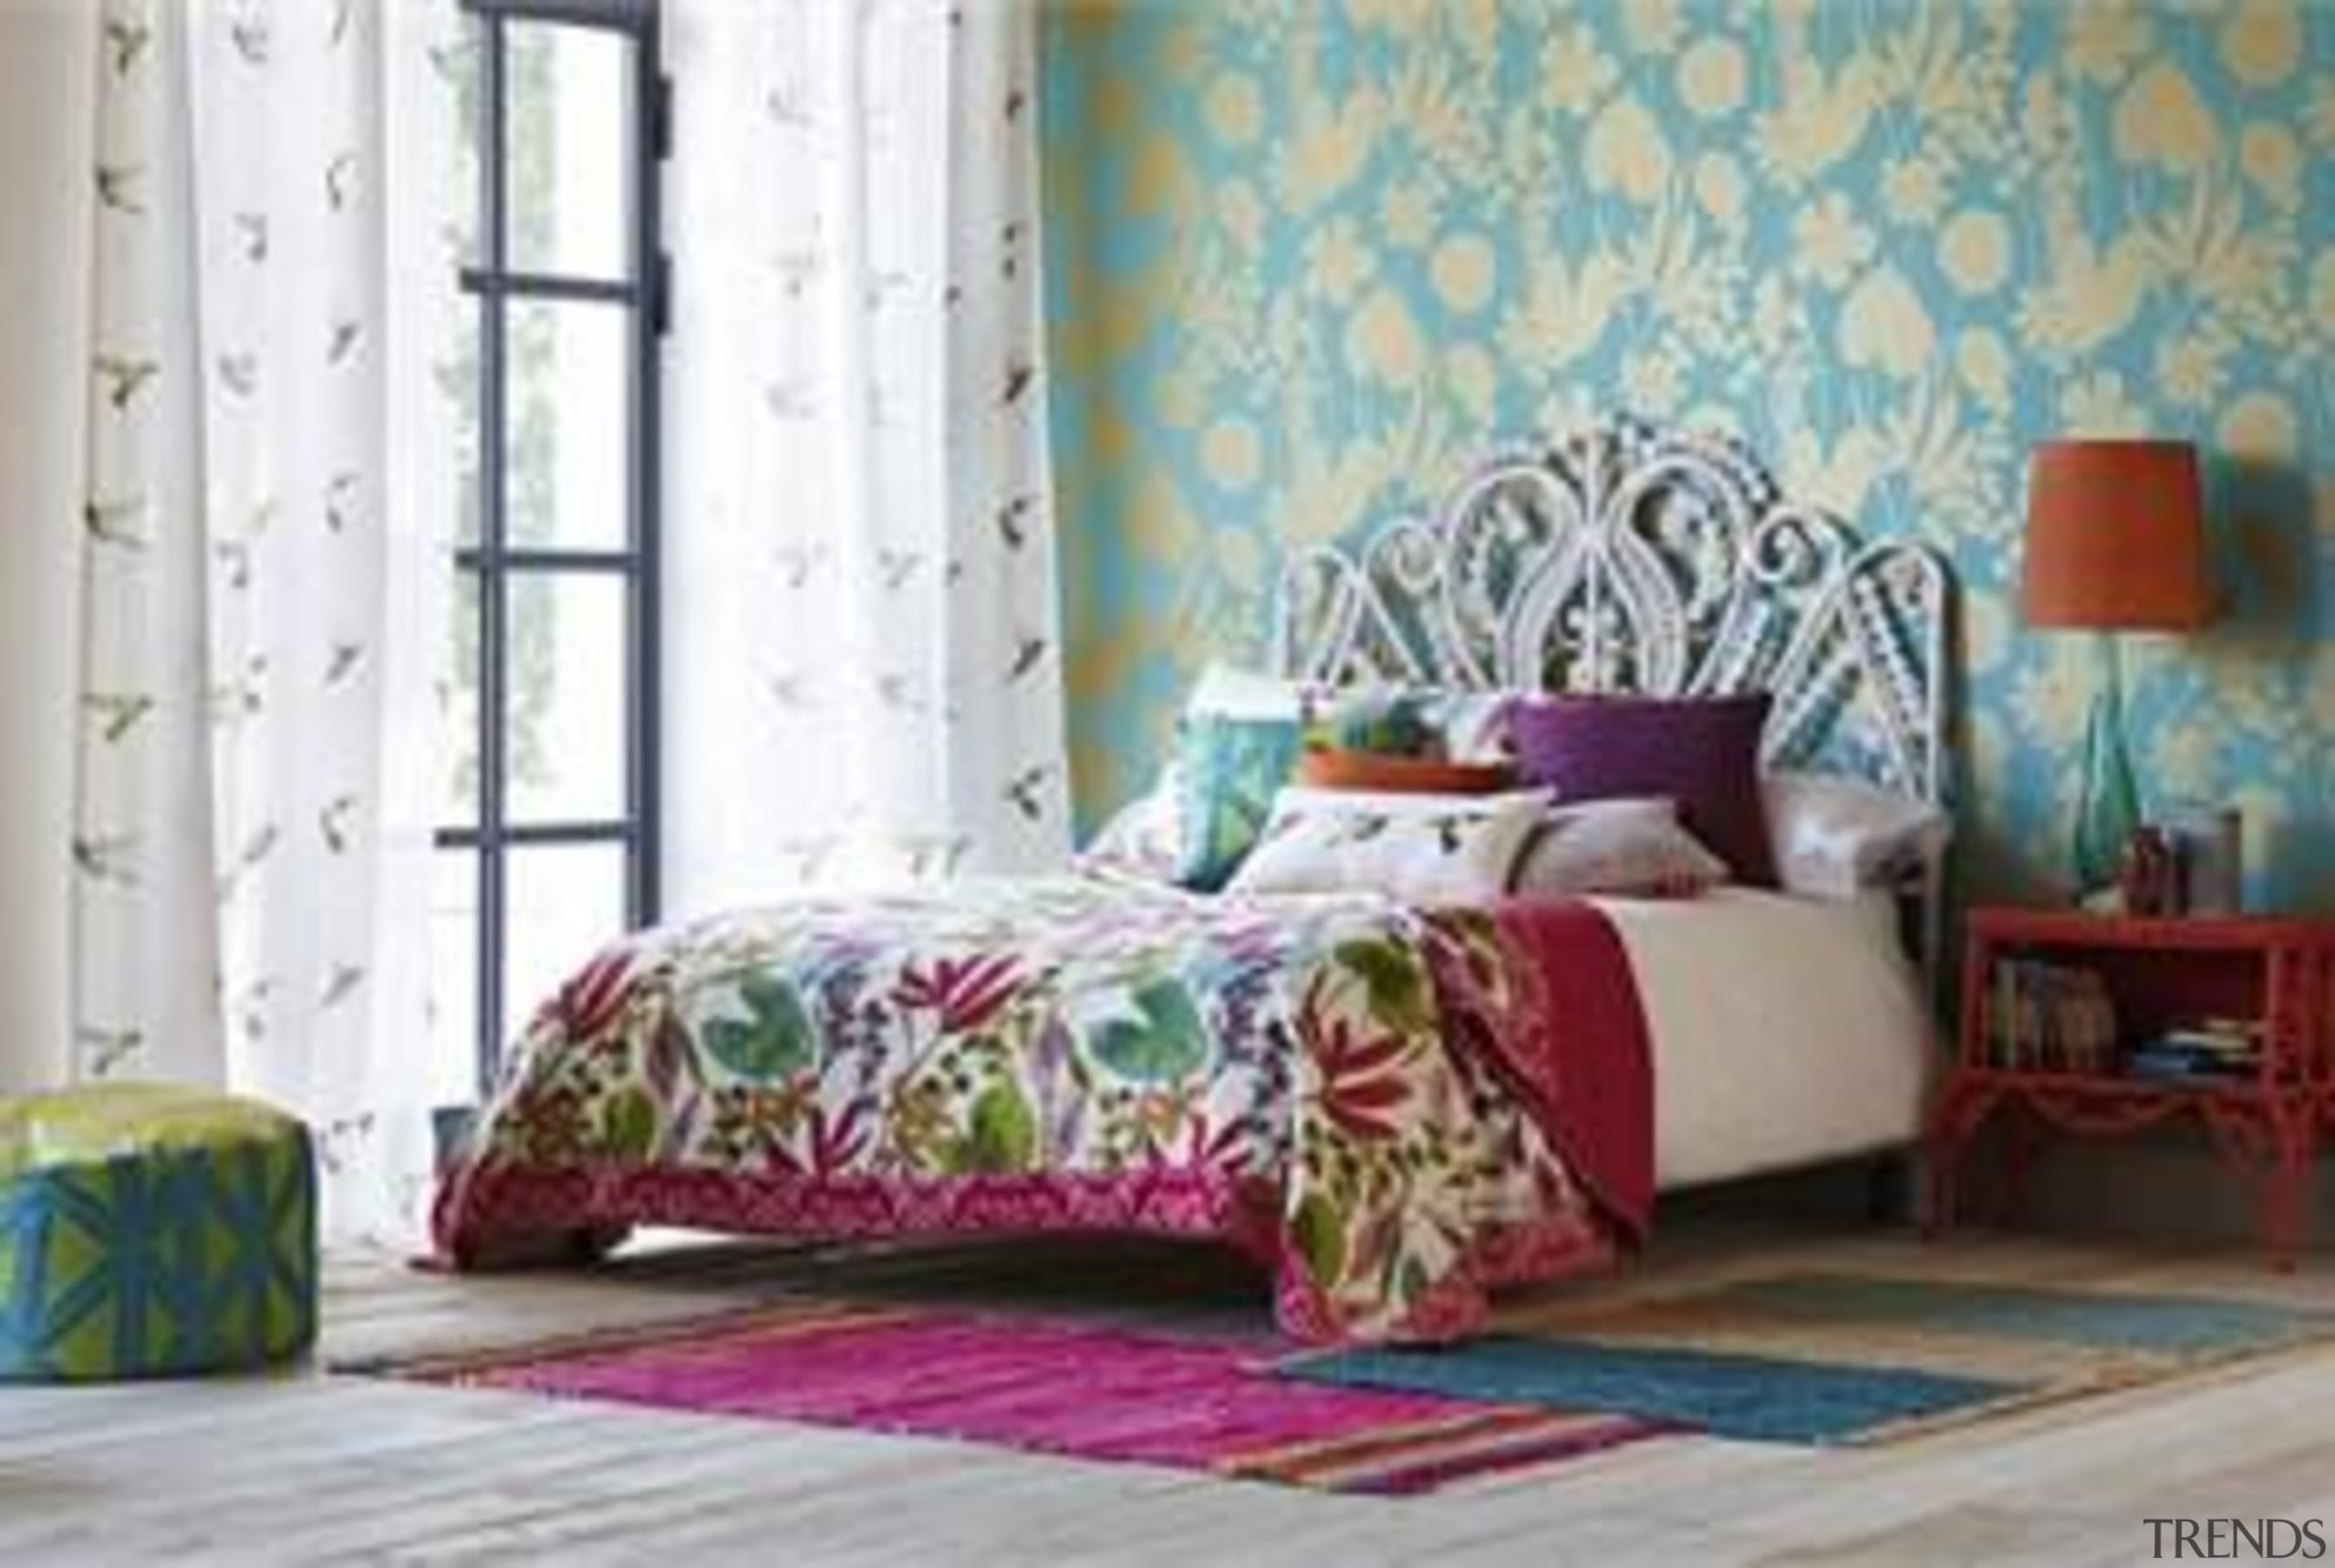 These stunning new Fabrics by Harlequin are available bed, bed frame, bed sheet, bedding, bedroom, couch, curtain, duvet cover, furniture, home, interior design, linens, living room, mattress, room, textile, wall, wallpaper, window, window covering, window treatment, gray, white